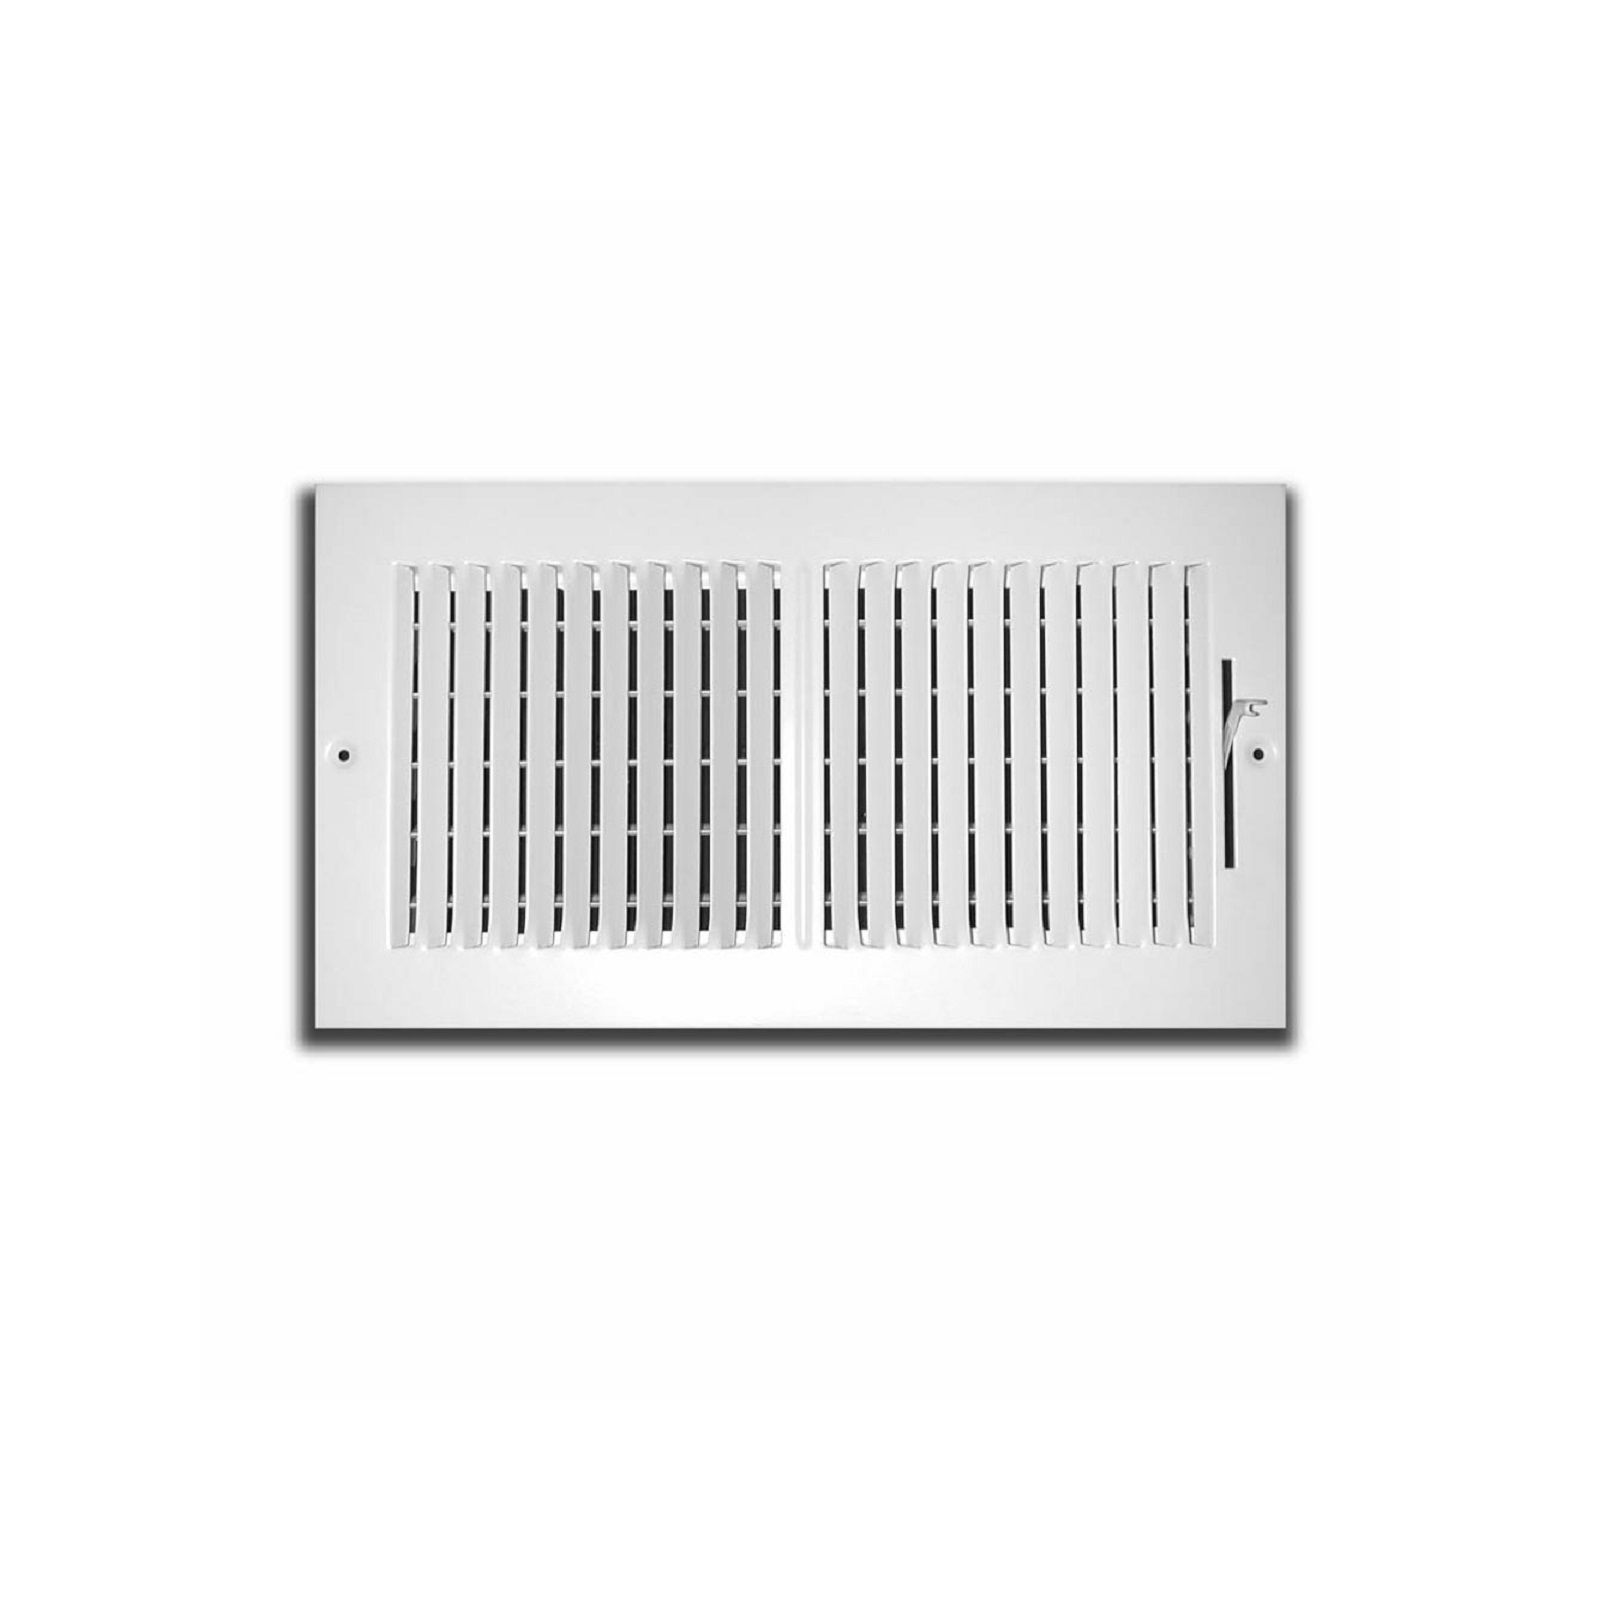 "TRUaire 102M 16X08 - Stamped Steel 2-Way Wall/Ceiling Register, 16"" X 08"""